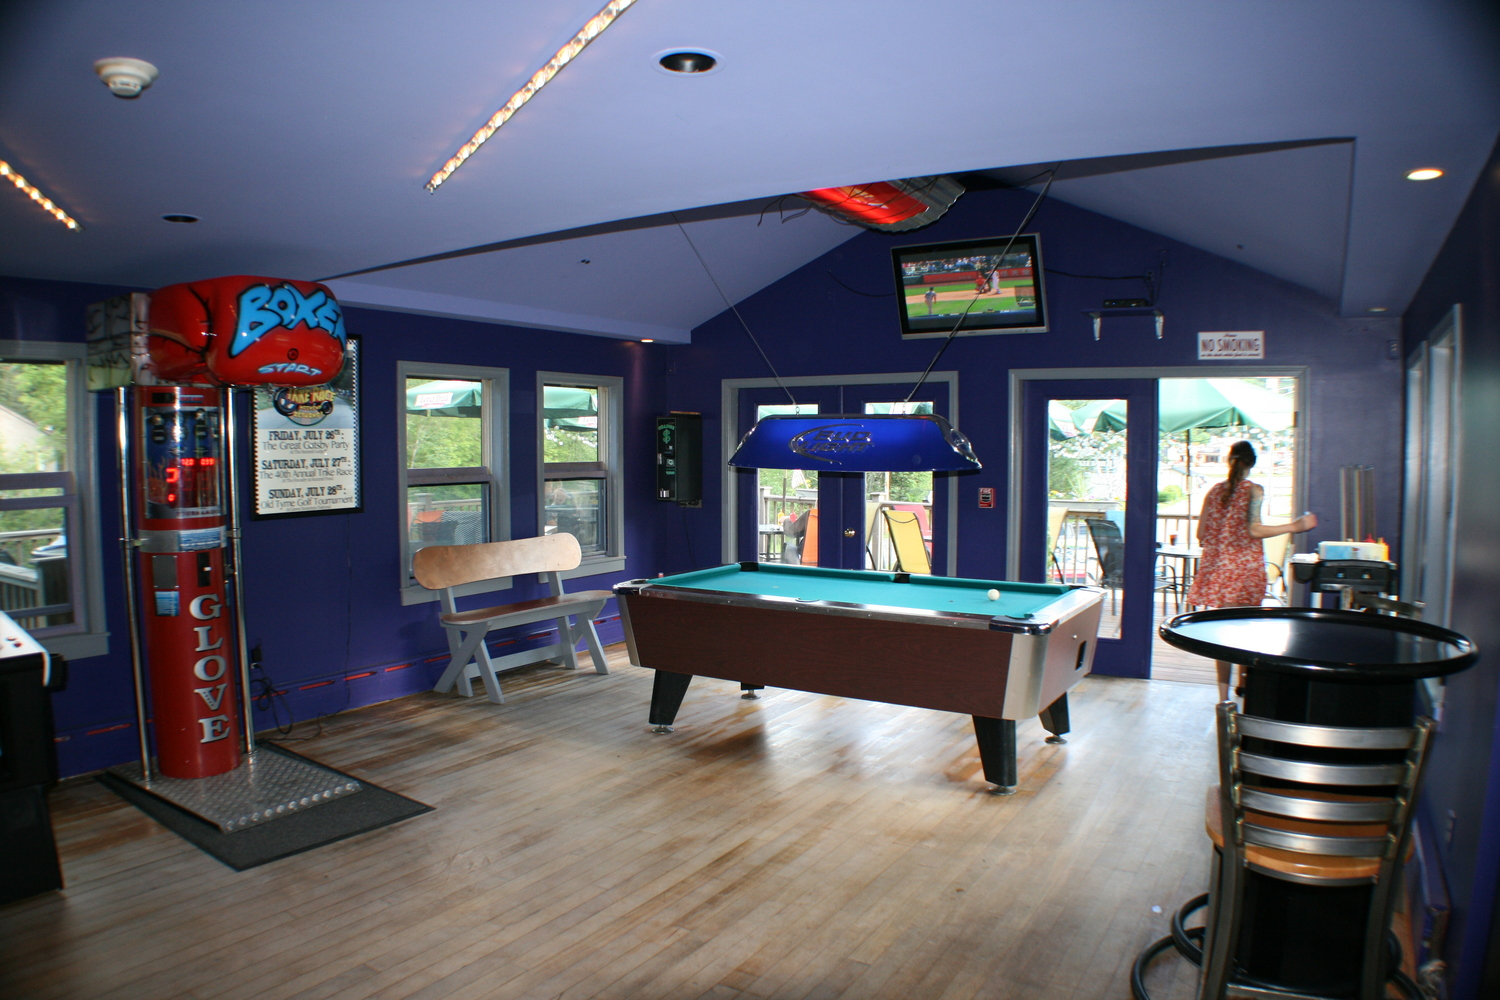 poolroom.jpeg